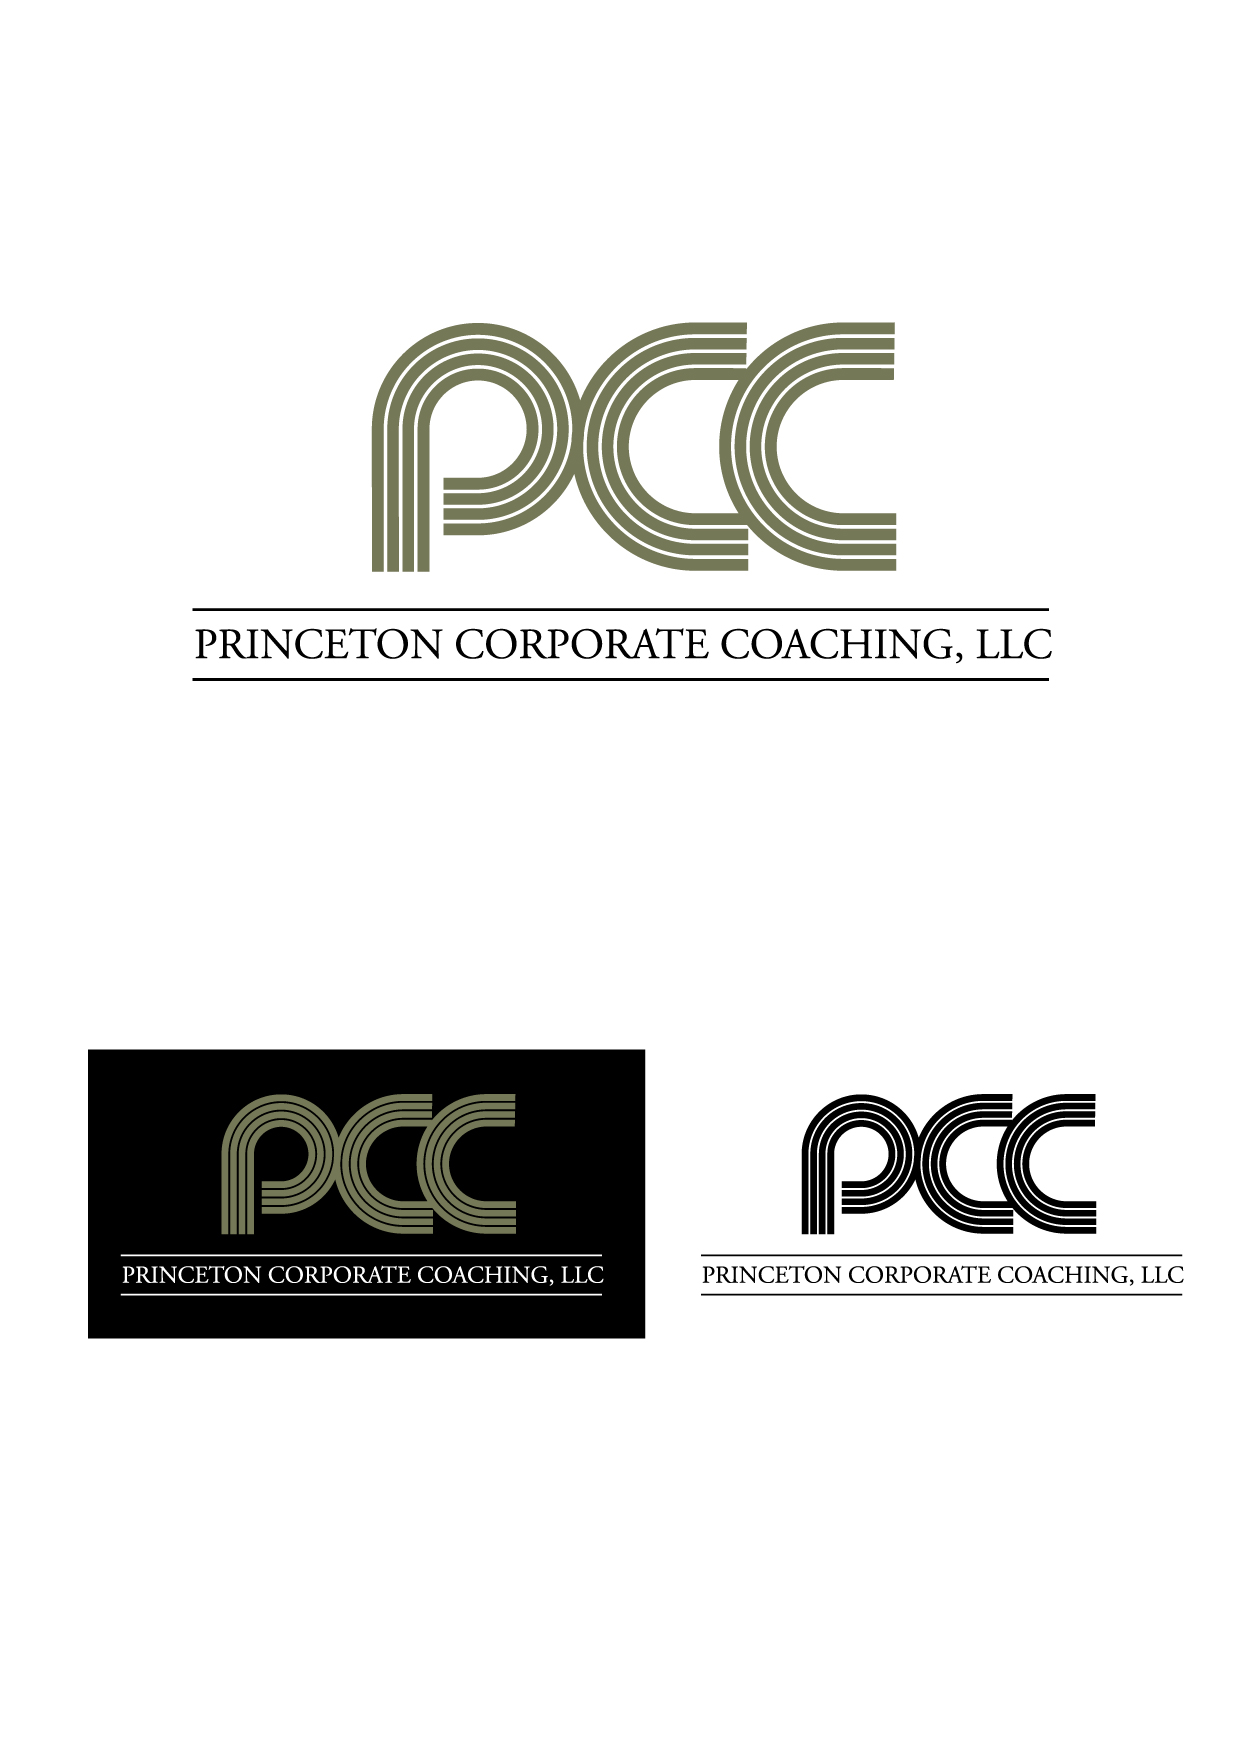 Logo Design by Wilfredo Mendoza - Entry No. 37 in the Logo Design Contest Unique Logo Design Wanted for Princeton Corporate Coaching, LLC.